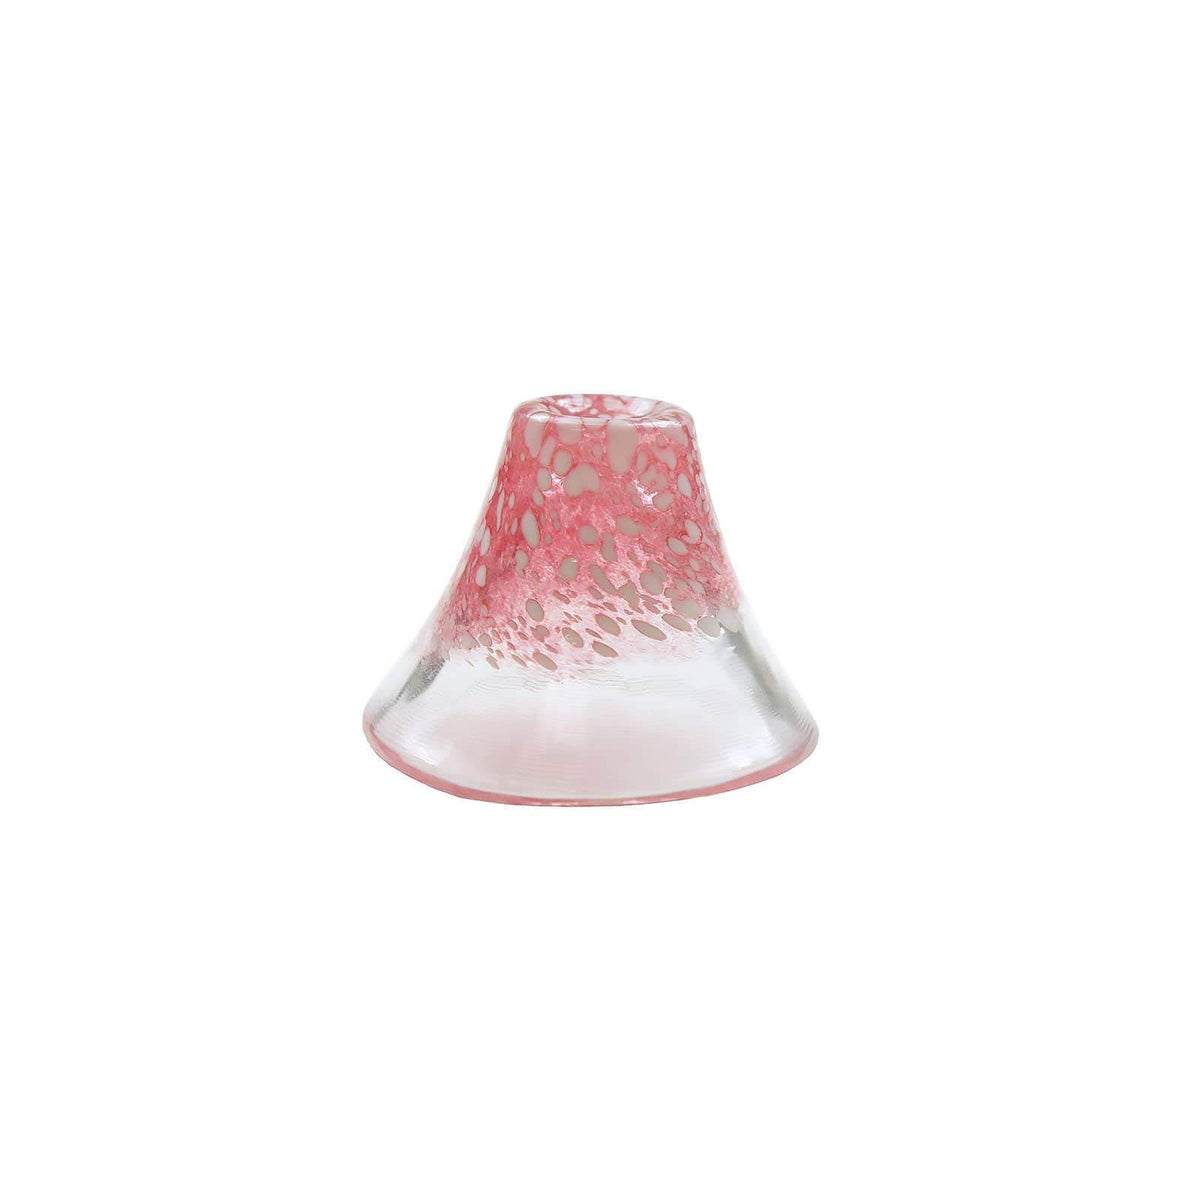 Toyo Sasaki Glass Mt.Fuji Glass Sake Cup (2 Colours) Red / Single Sake Cups